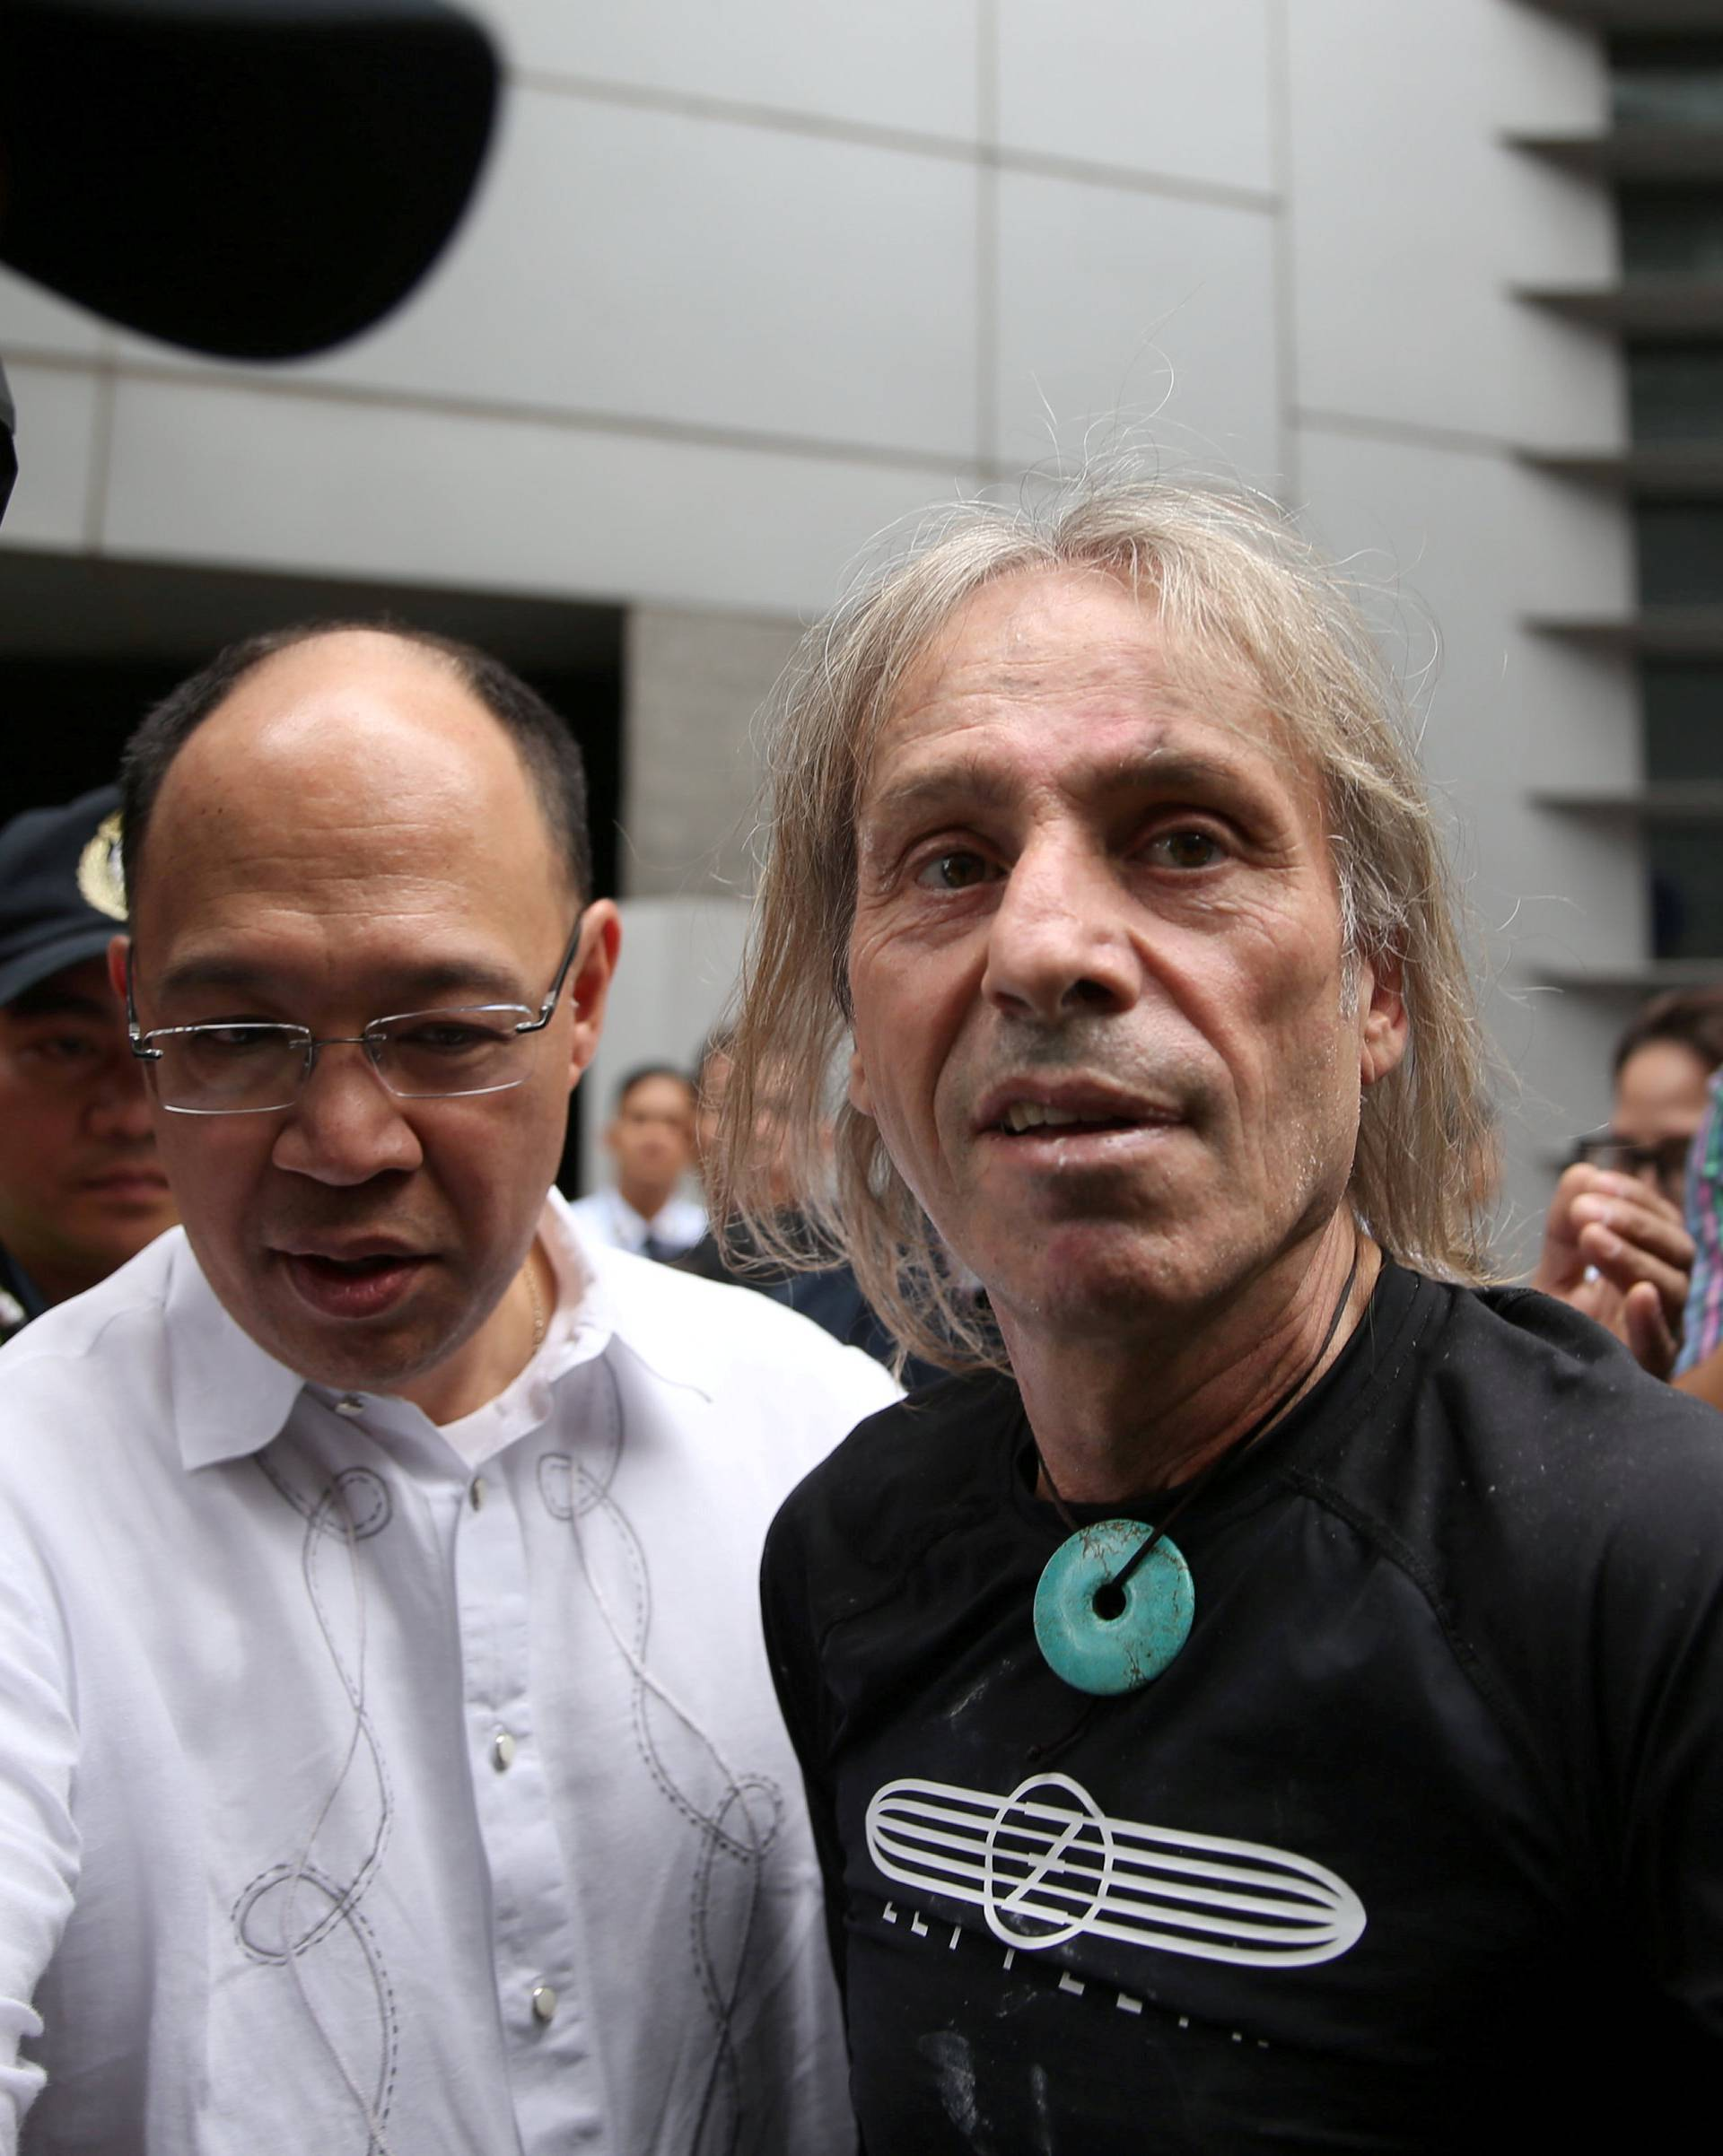 French climber Robert is escorted by Filipino cops after his 47-storey GT International Tower climb in Makati City